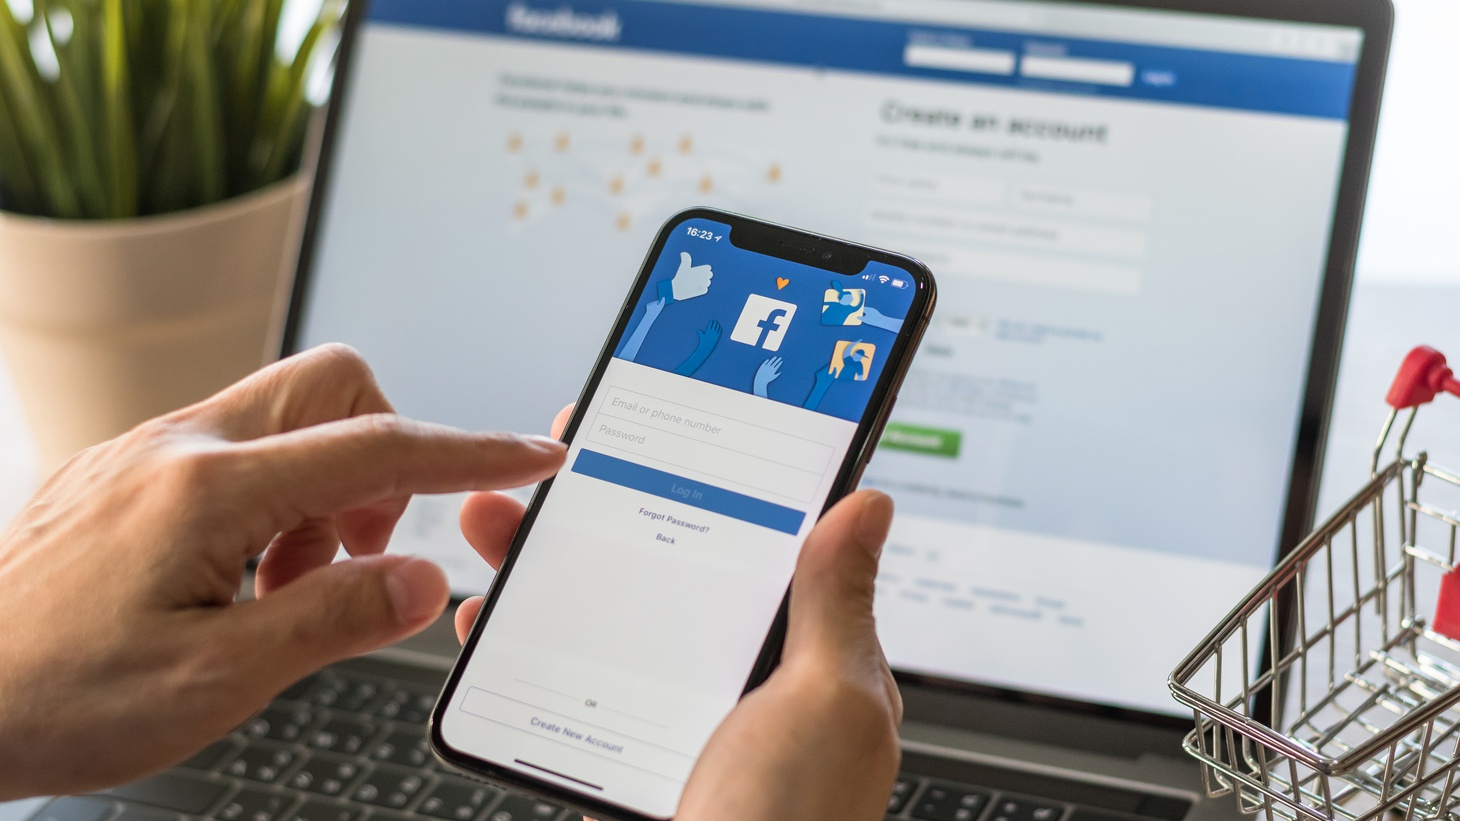 In 2019, hackers stole private information such as phone numbers, email addresses, full names, and locations of Facebook users.